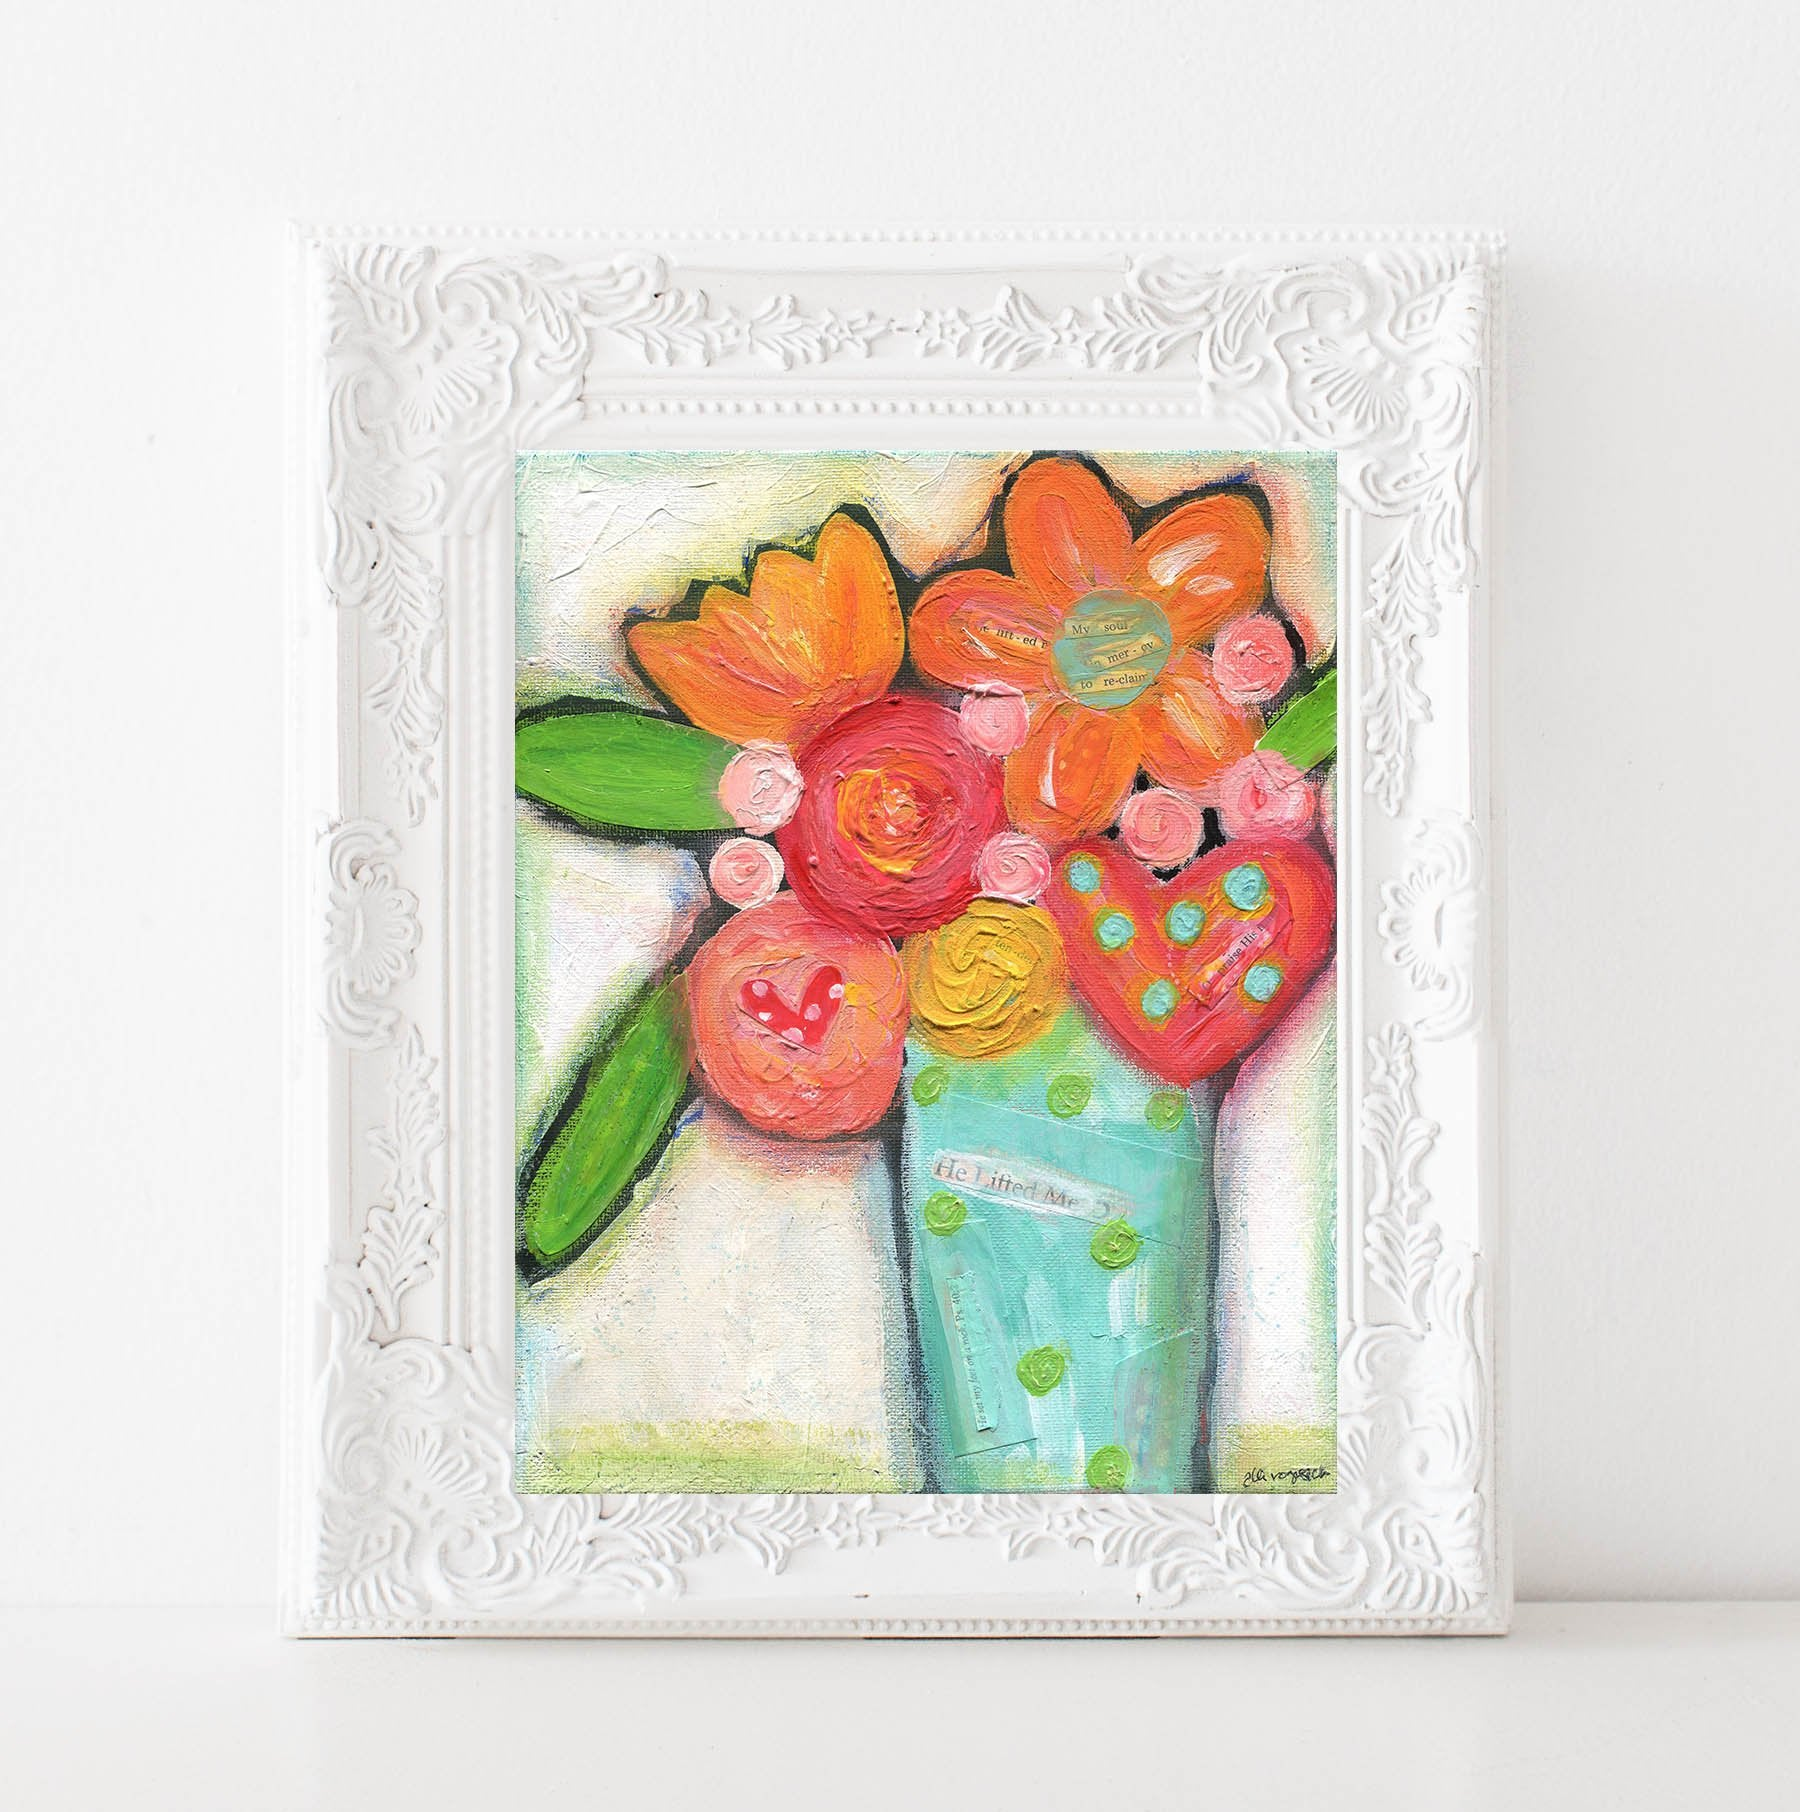 Floral Nursery decor, Bright colorful Flower painting, Christian wall decor, flowers in vase original acrylic art print, 8x10, 11x14 prints